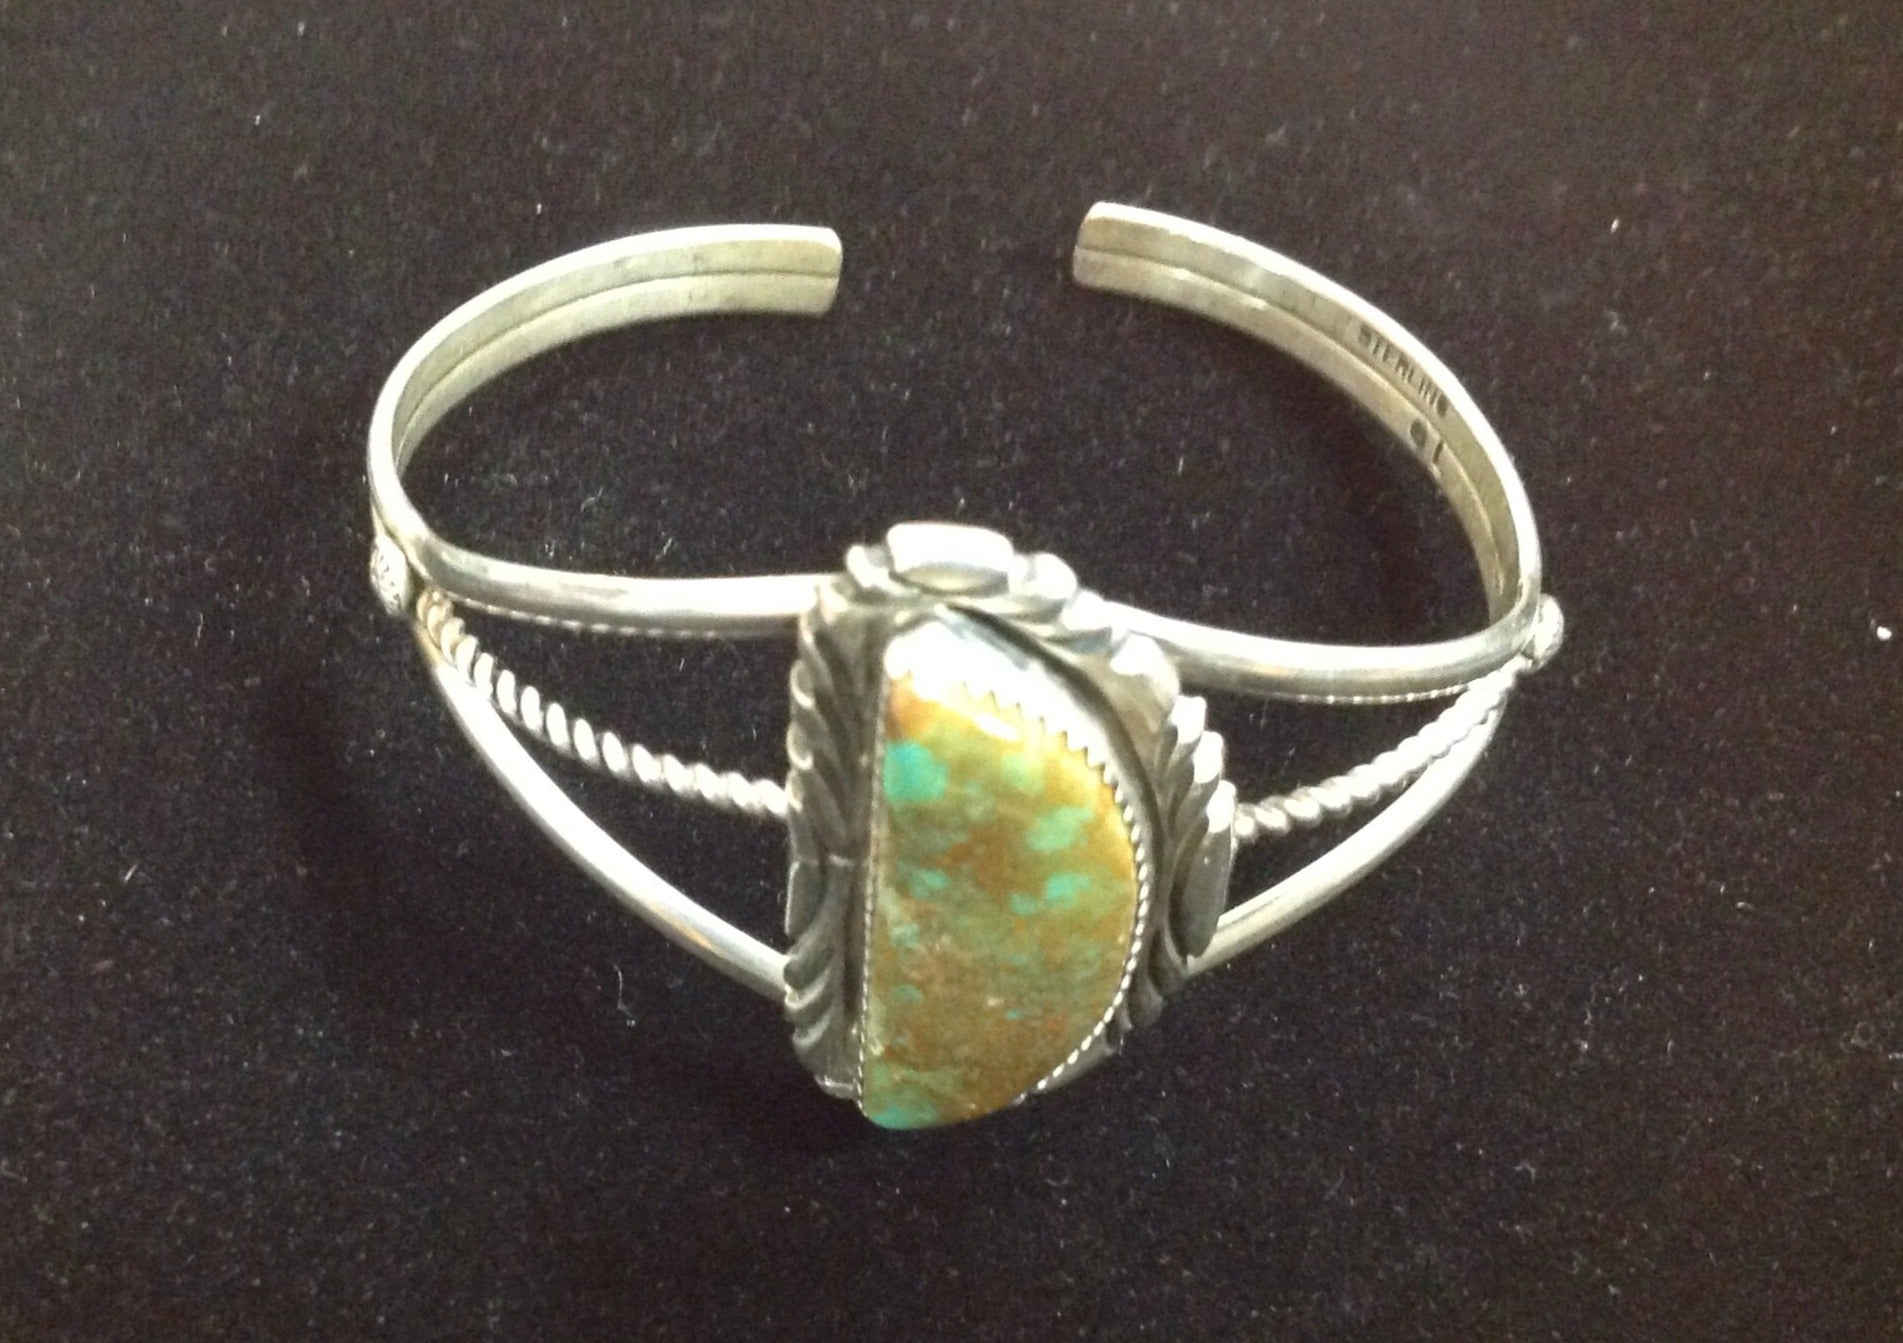 True Royston turquoise in a framed cuff 925 sterling by Gilbert Lee - Navajo